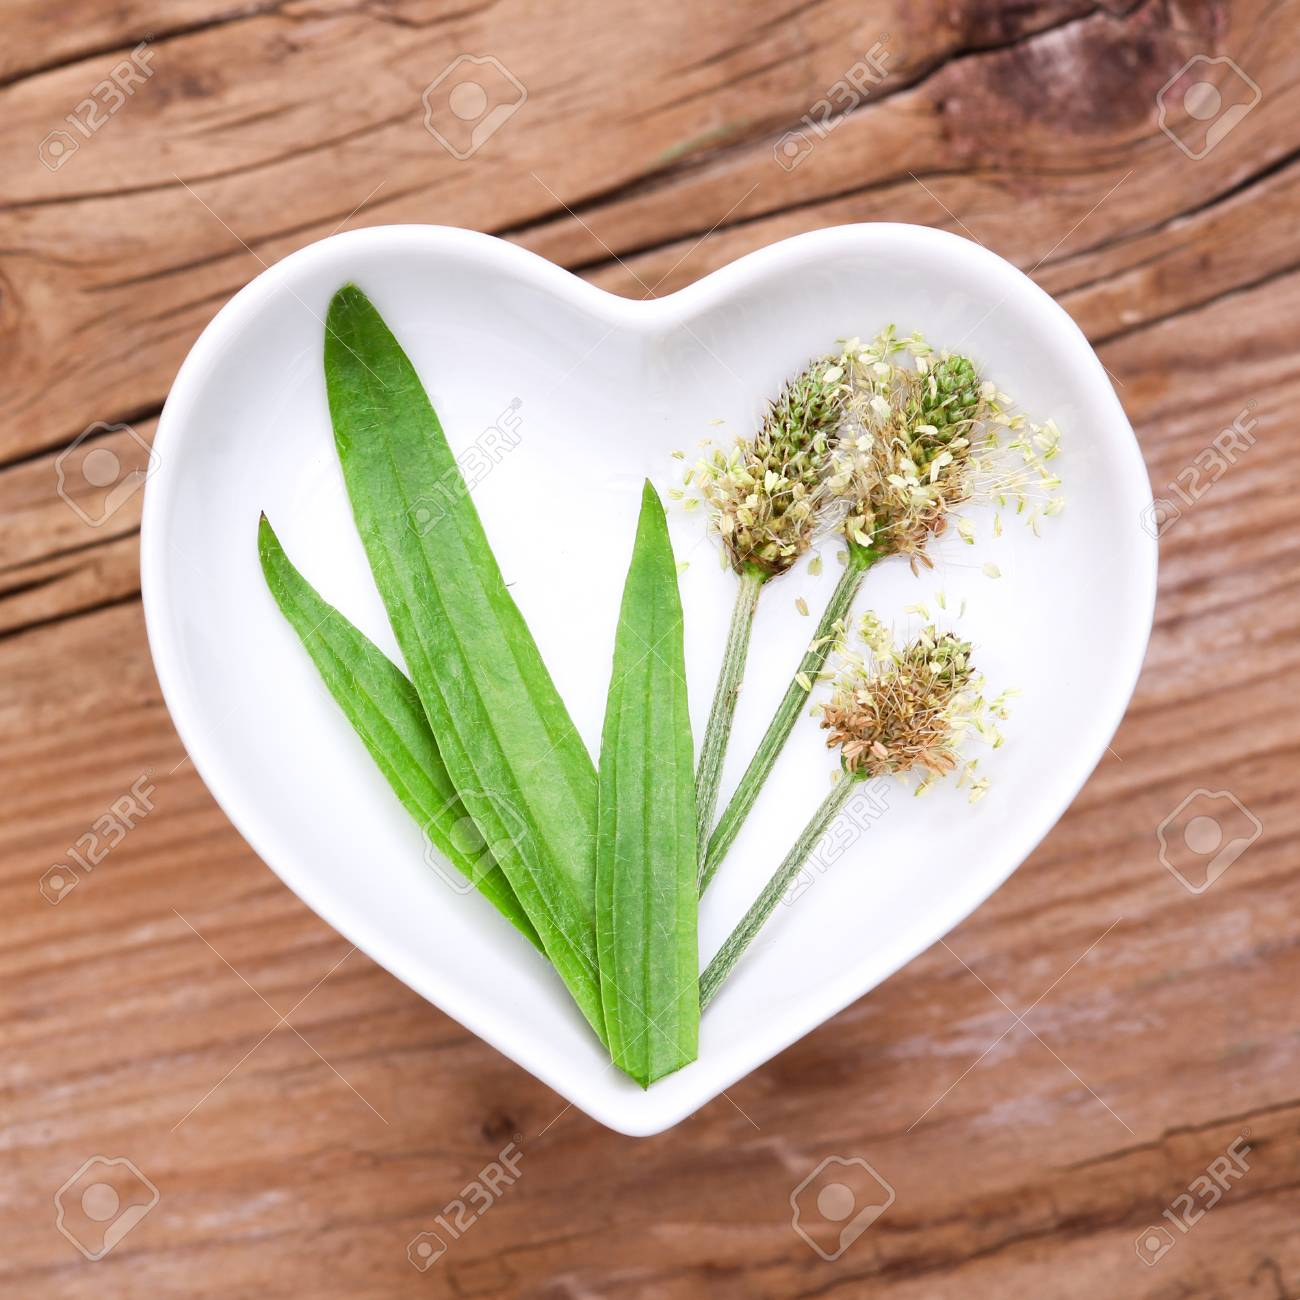 Homeopathy and cooking with ribwort plantain - 61826778